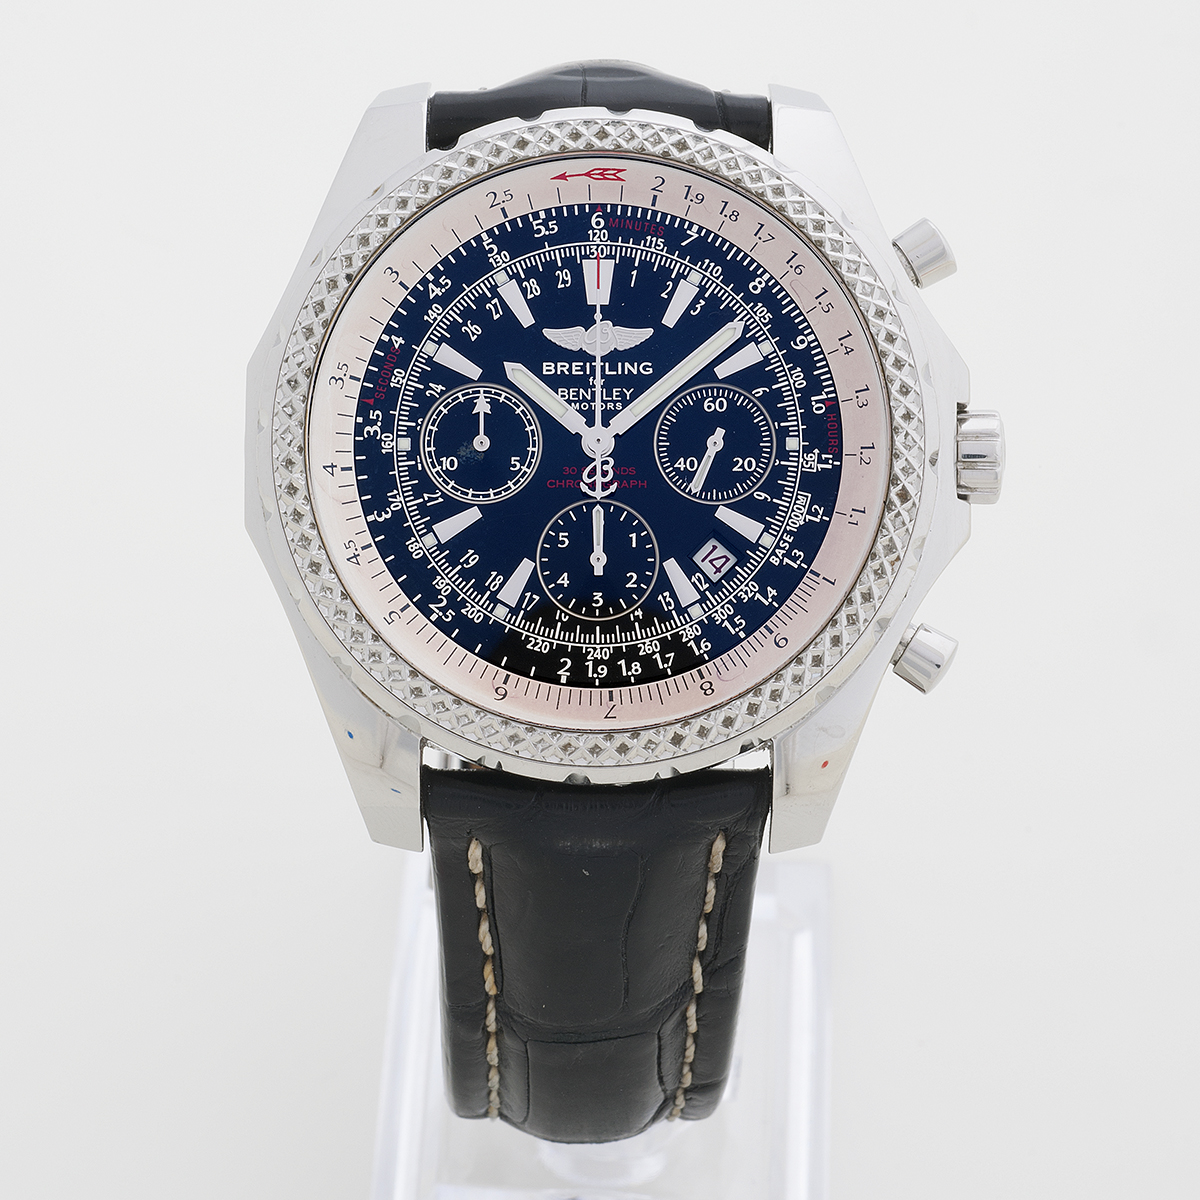 lemans i edition white breitling mens bentley watch chronograph limited